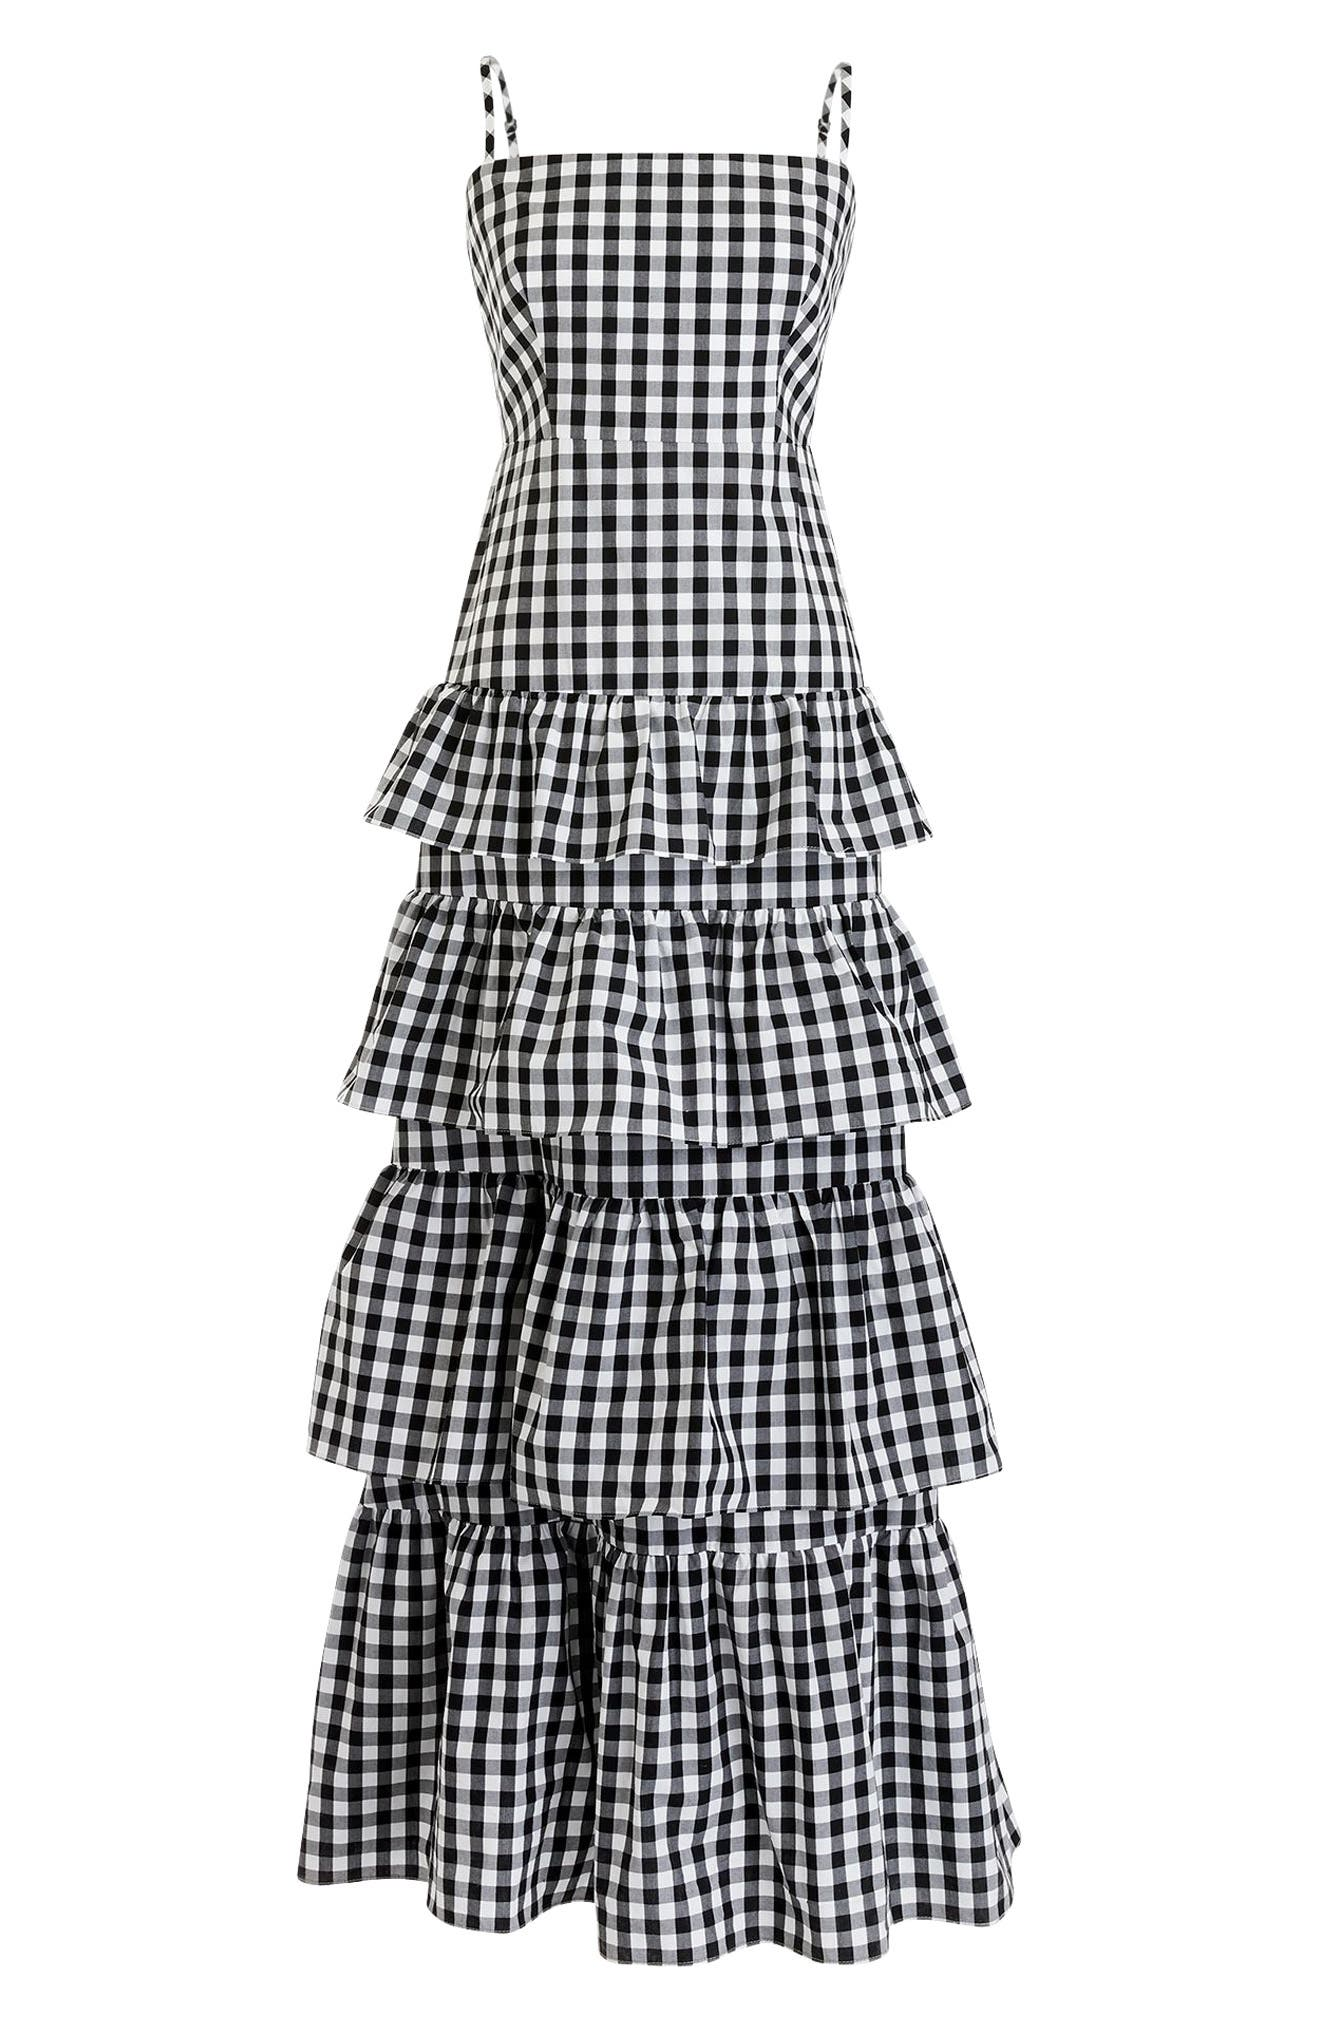 Tiered Gingham Dress,                             Alternate thumbnail 4, color,                             Black